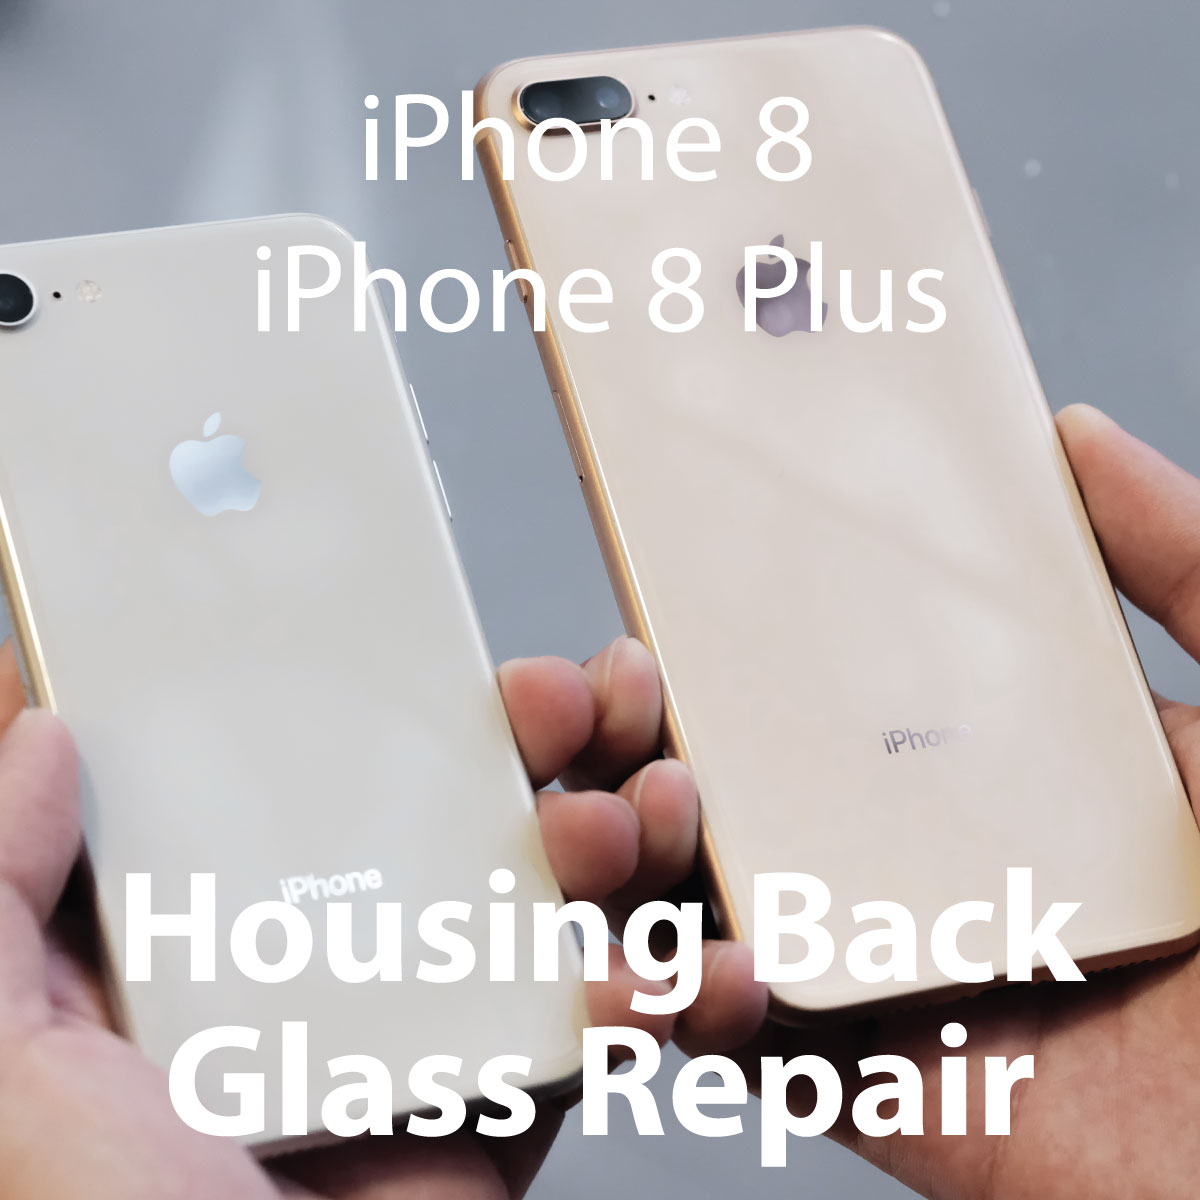 iPhone 8 Series Back Glass